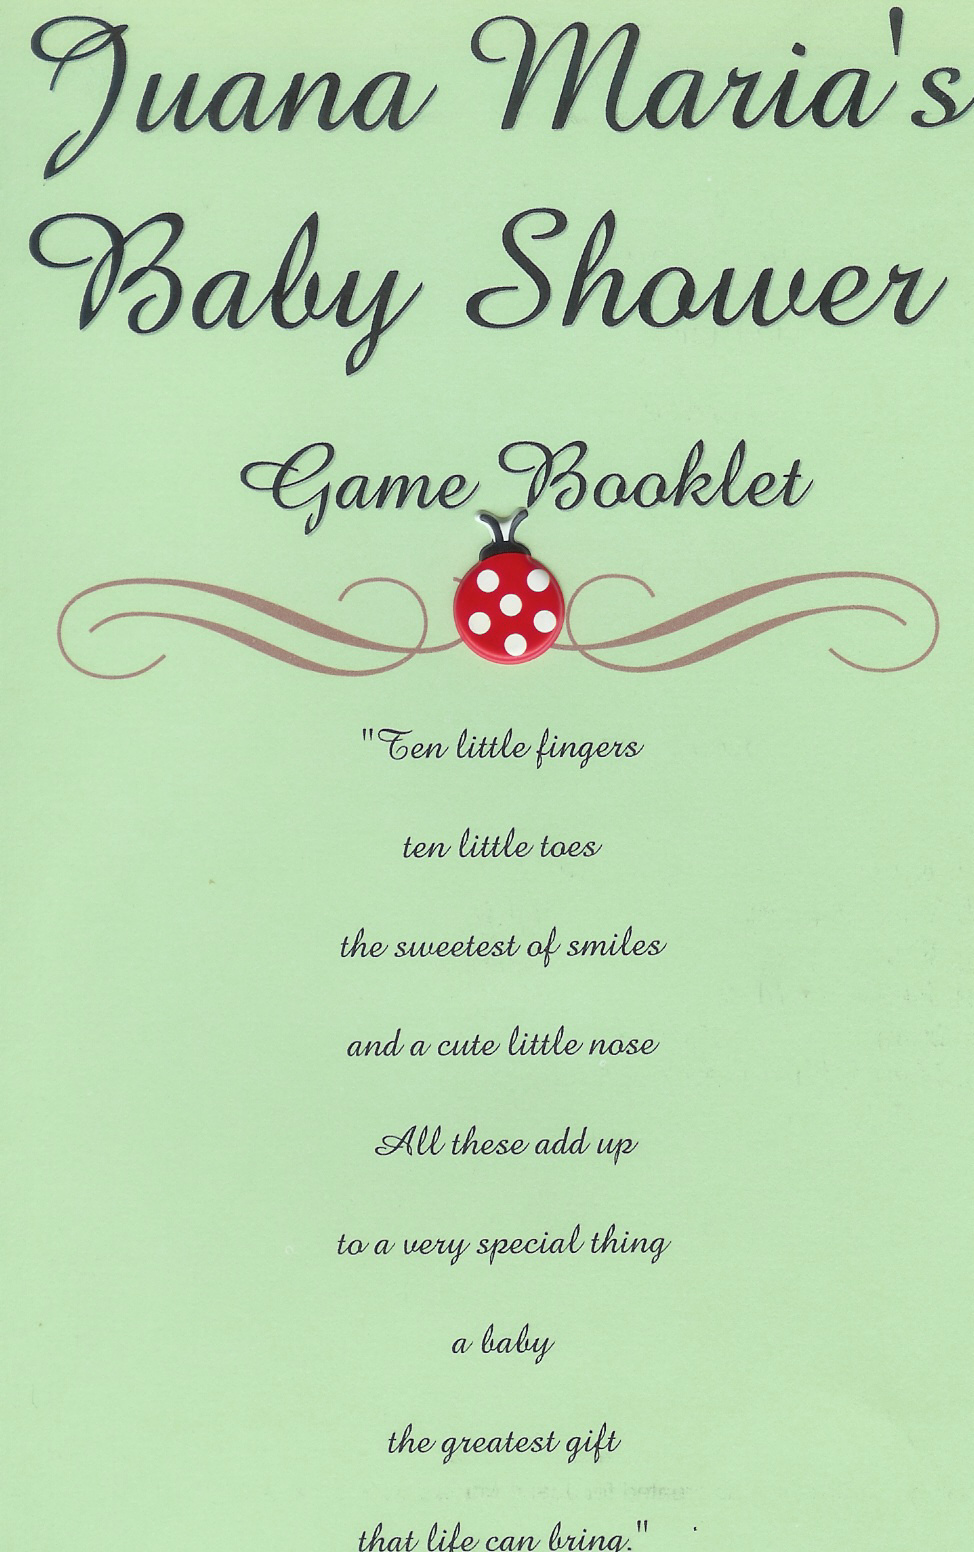 baby shower game booklet template - ester a creations blog baby shower games